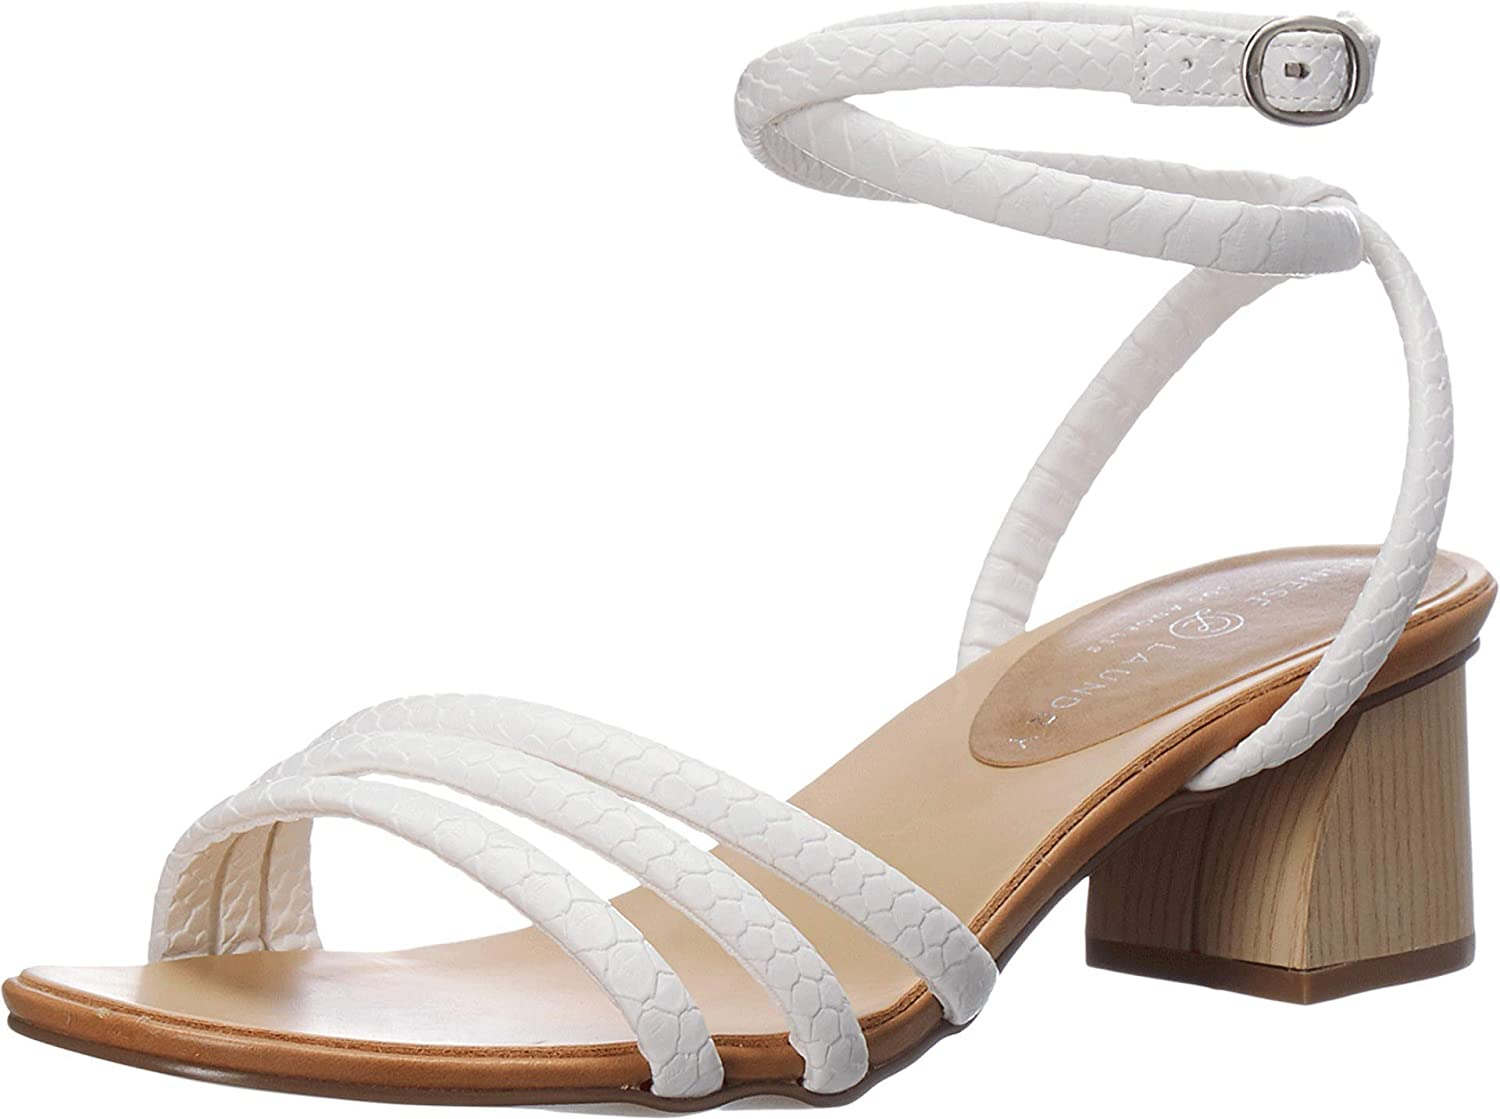 Chinese Laundry Women's Strappy Sandal, Ankle Strap Heeled